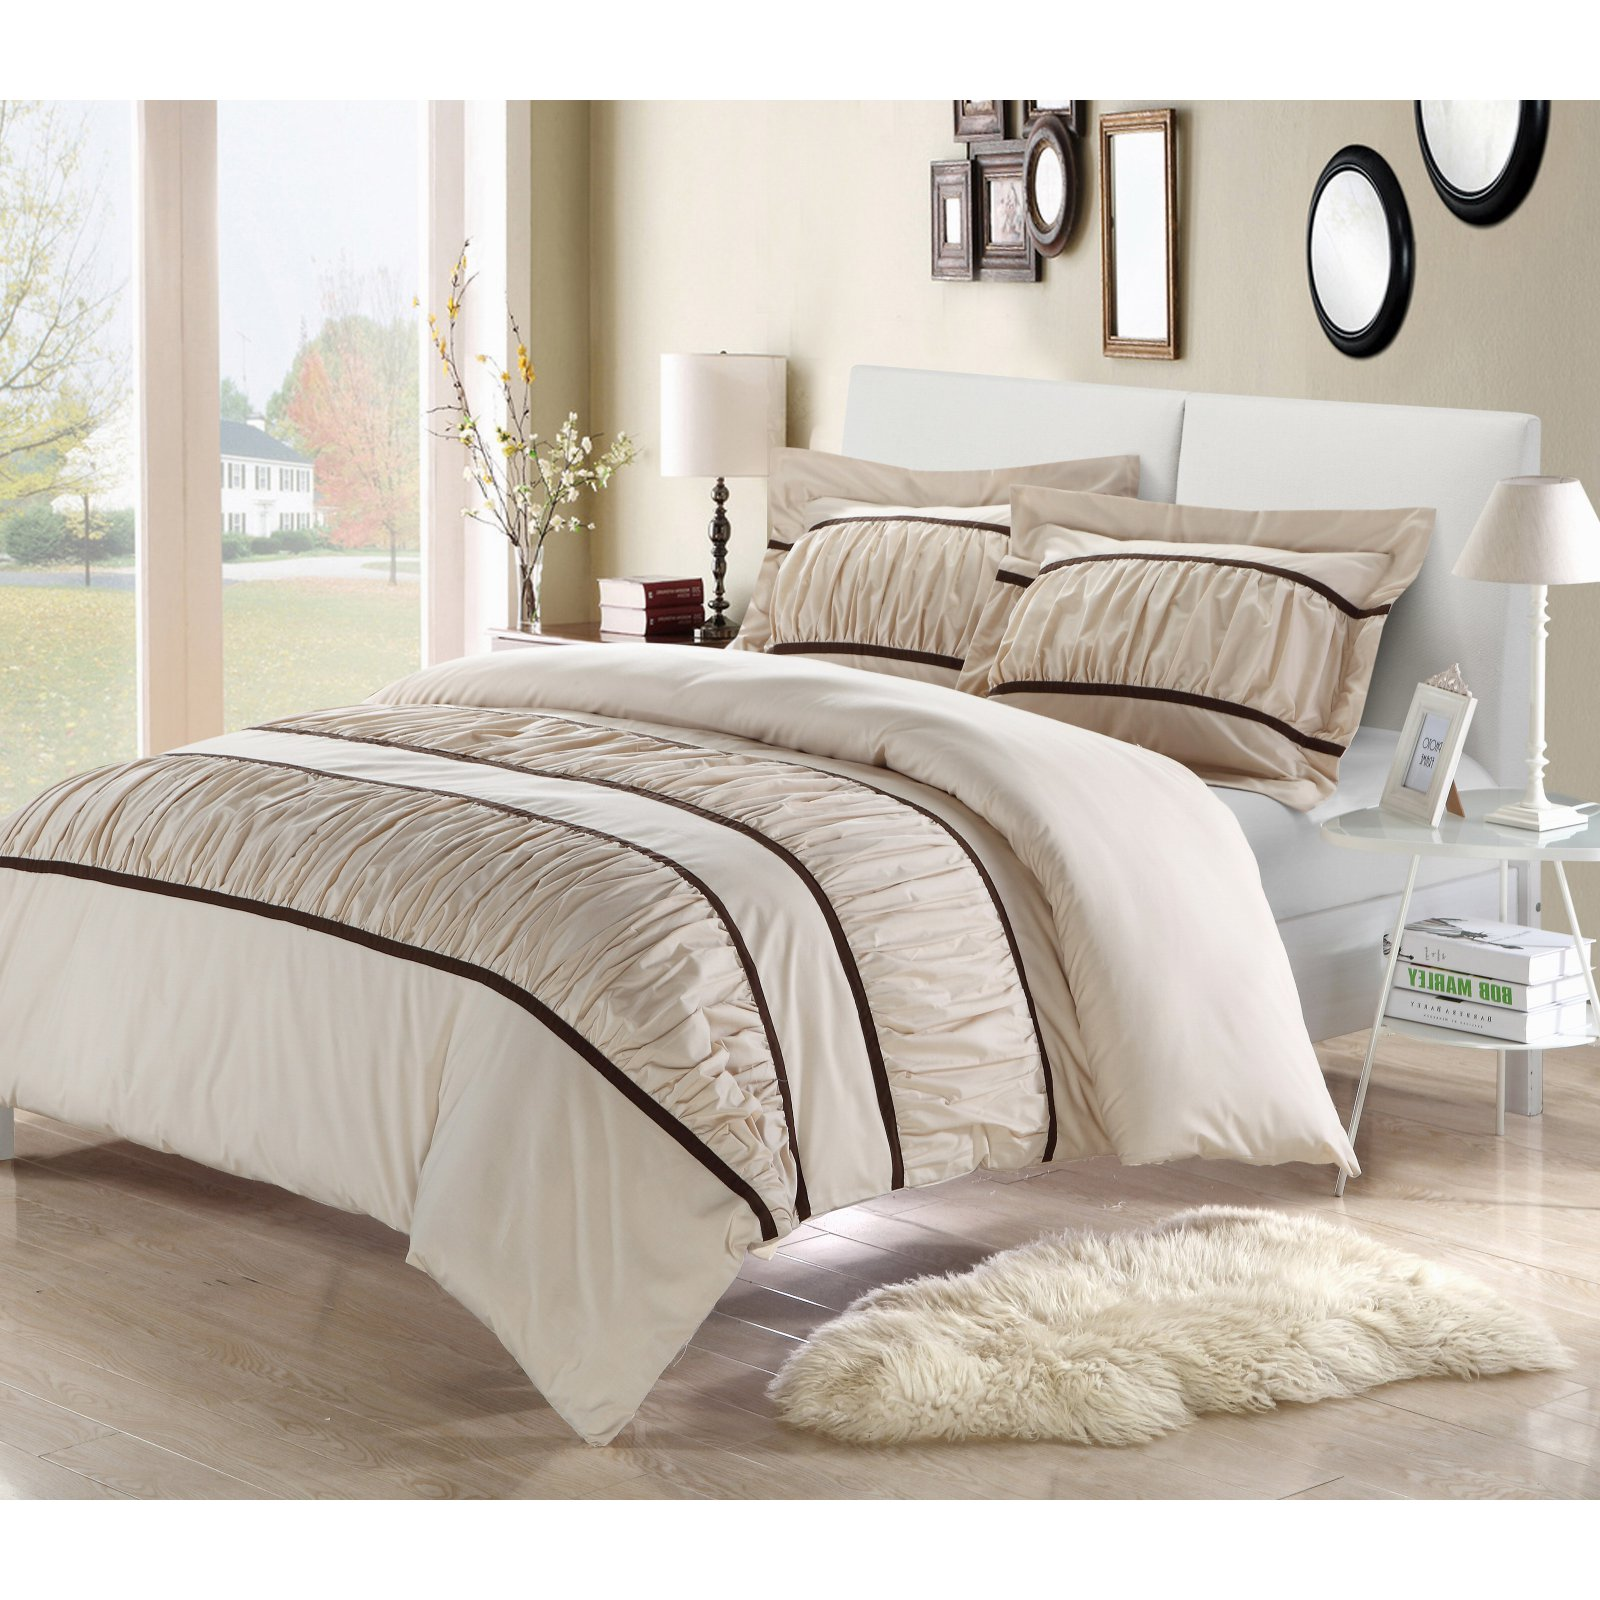 Chic Home Betsy Ruffled Duvet Cover Set